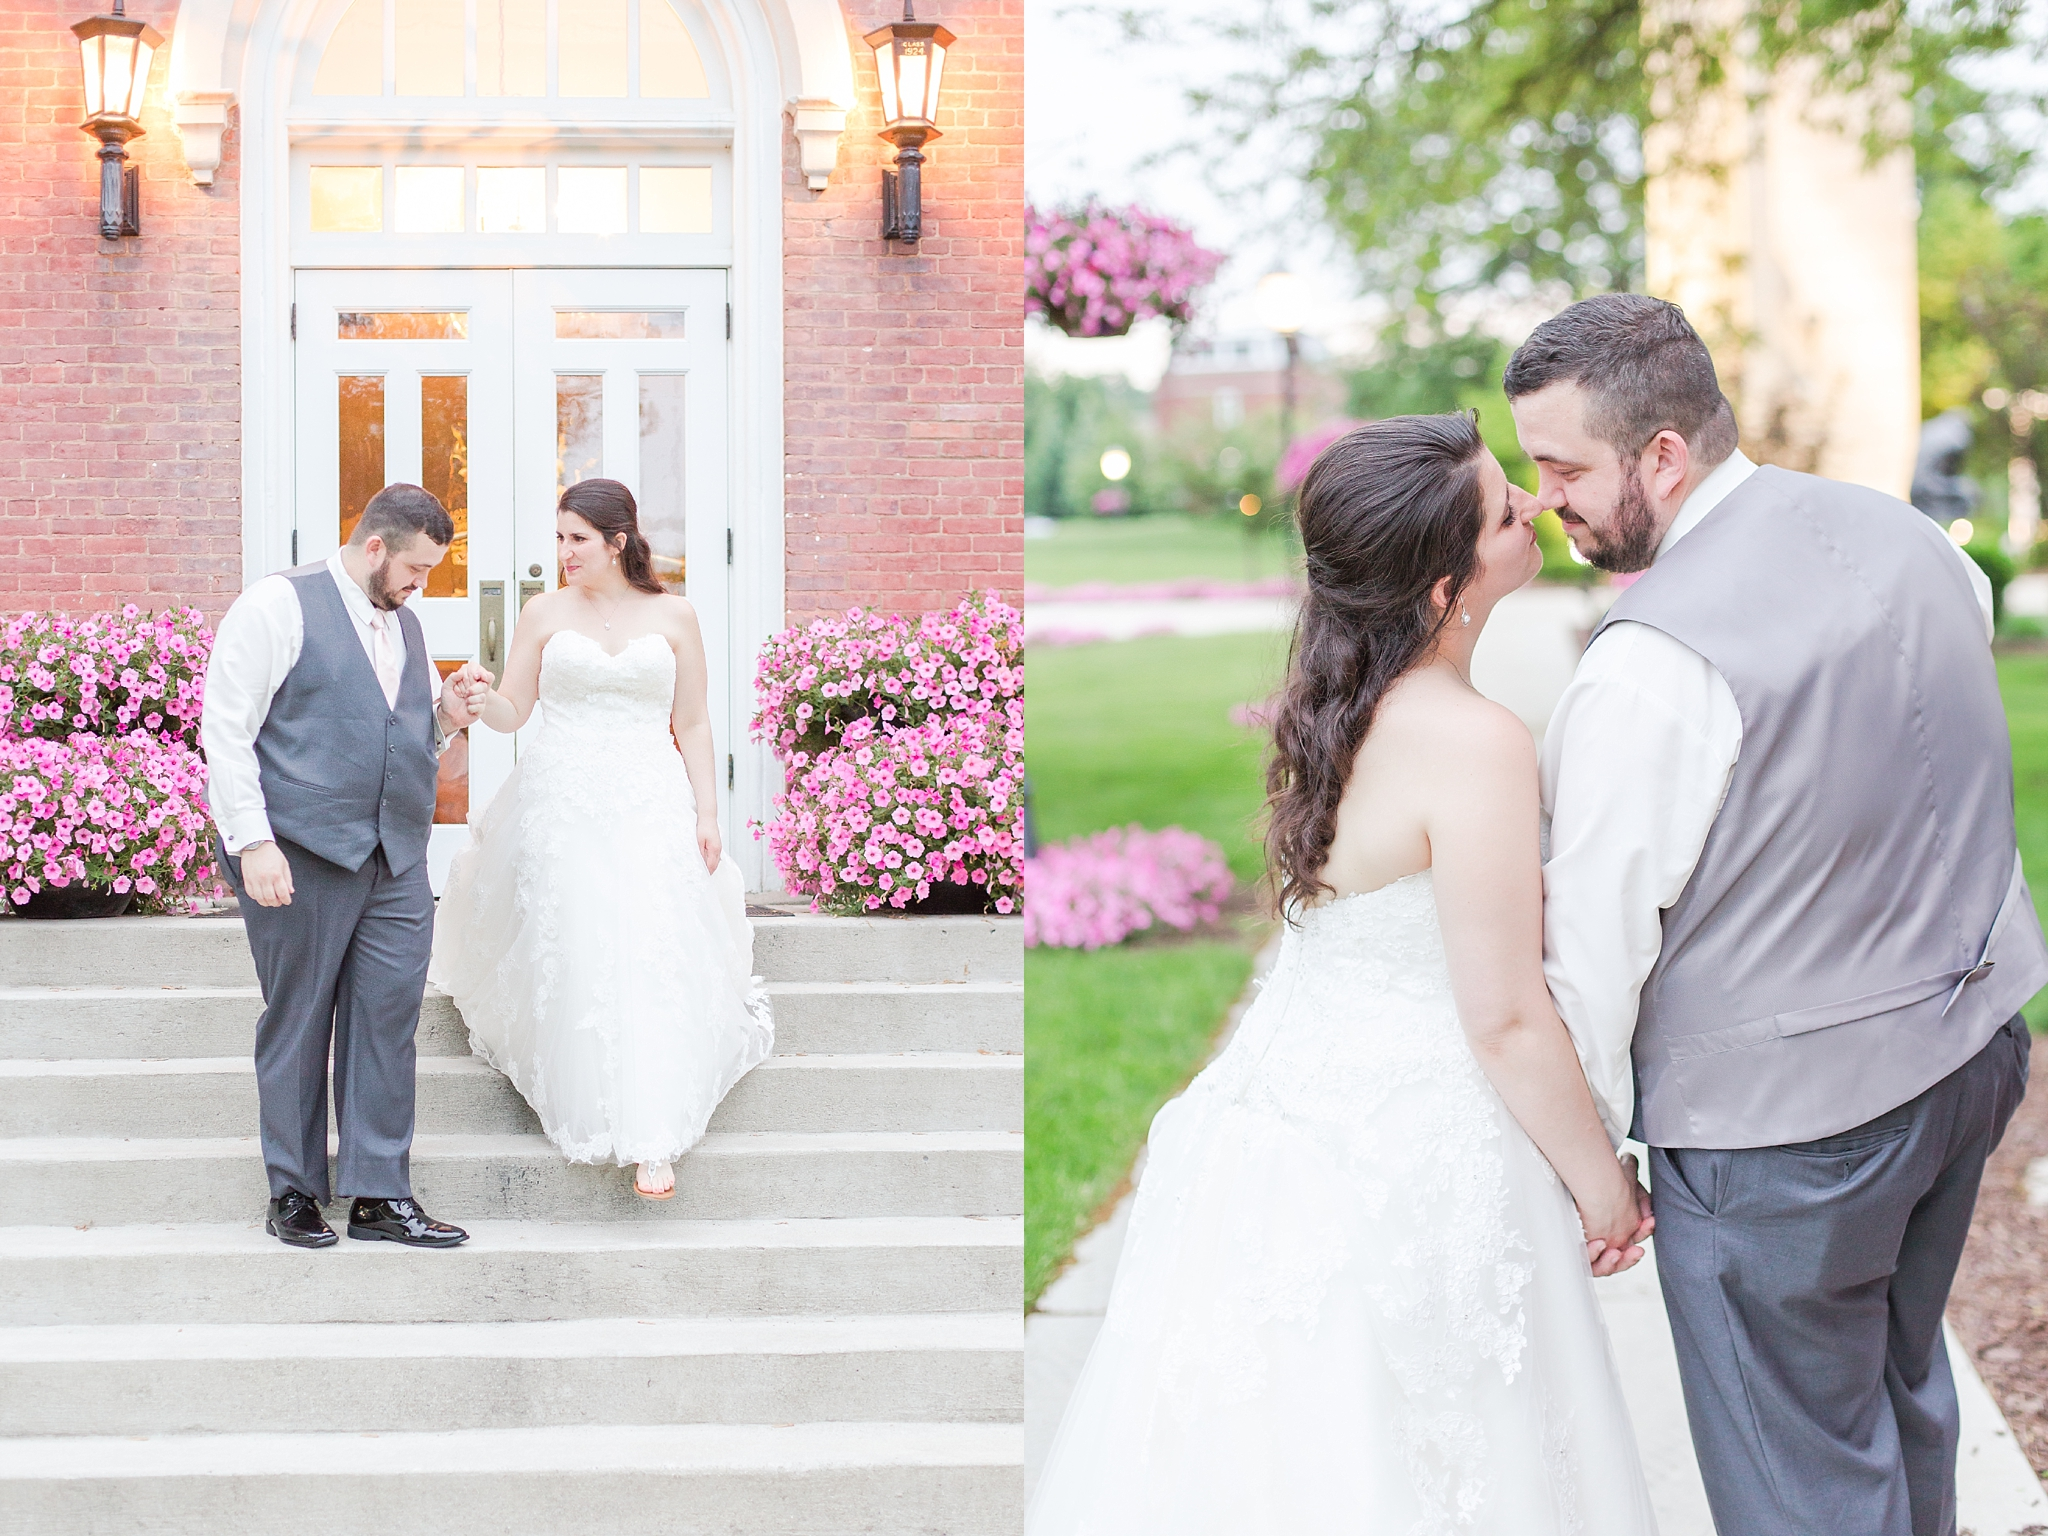 emotional-laid-back-romantic-wedding-photos-at-adrian-college-herrick-chapel-in-adrian-michigan-by-courtney-carolyn-photography_0057.jpg